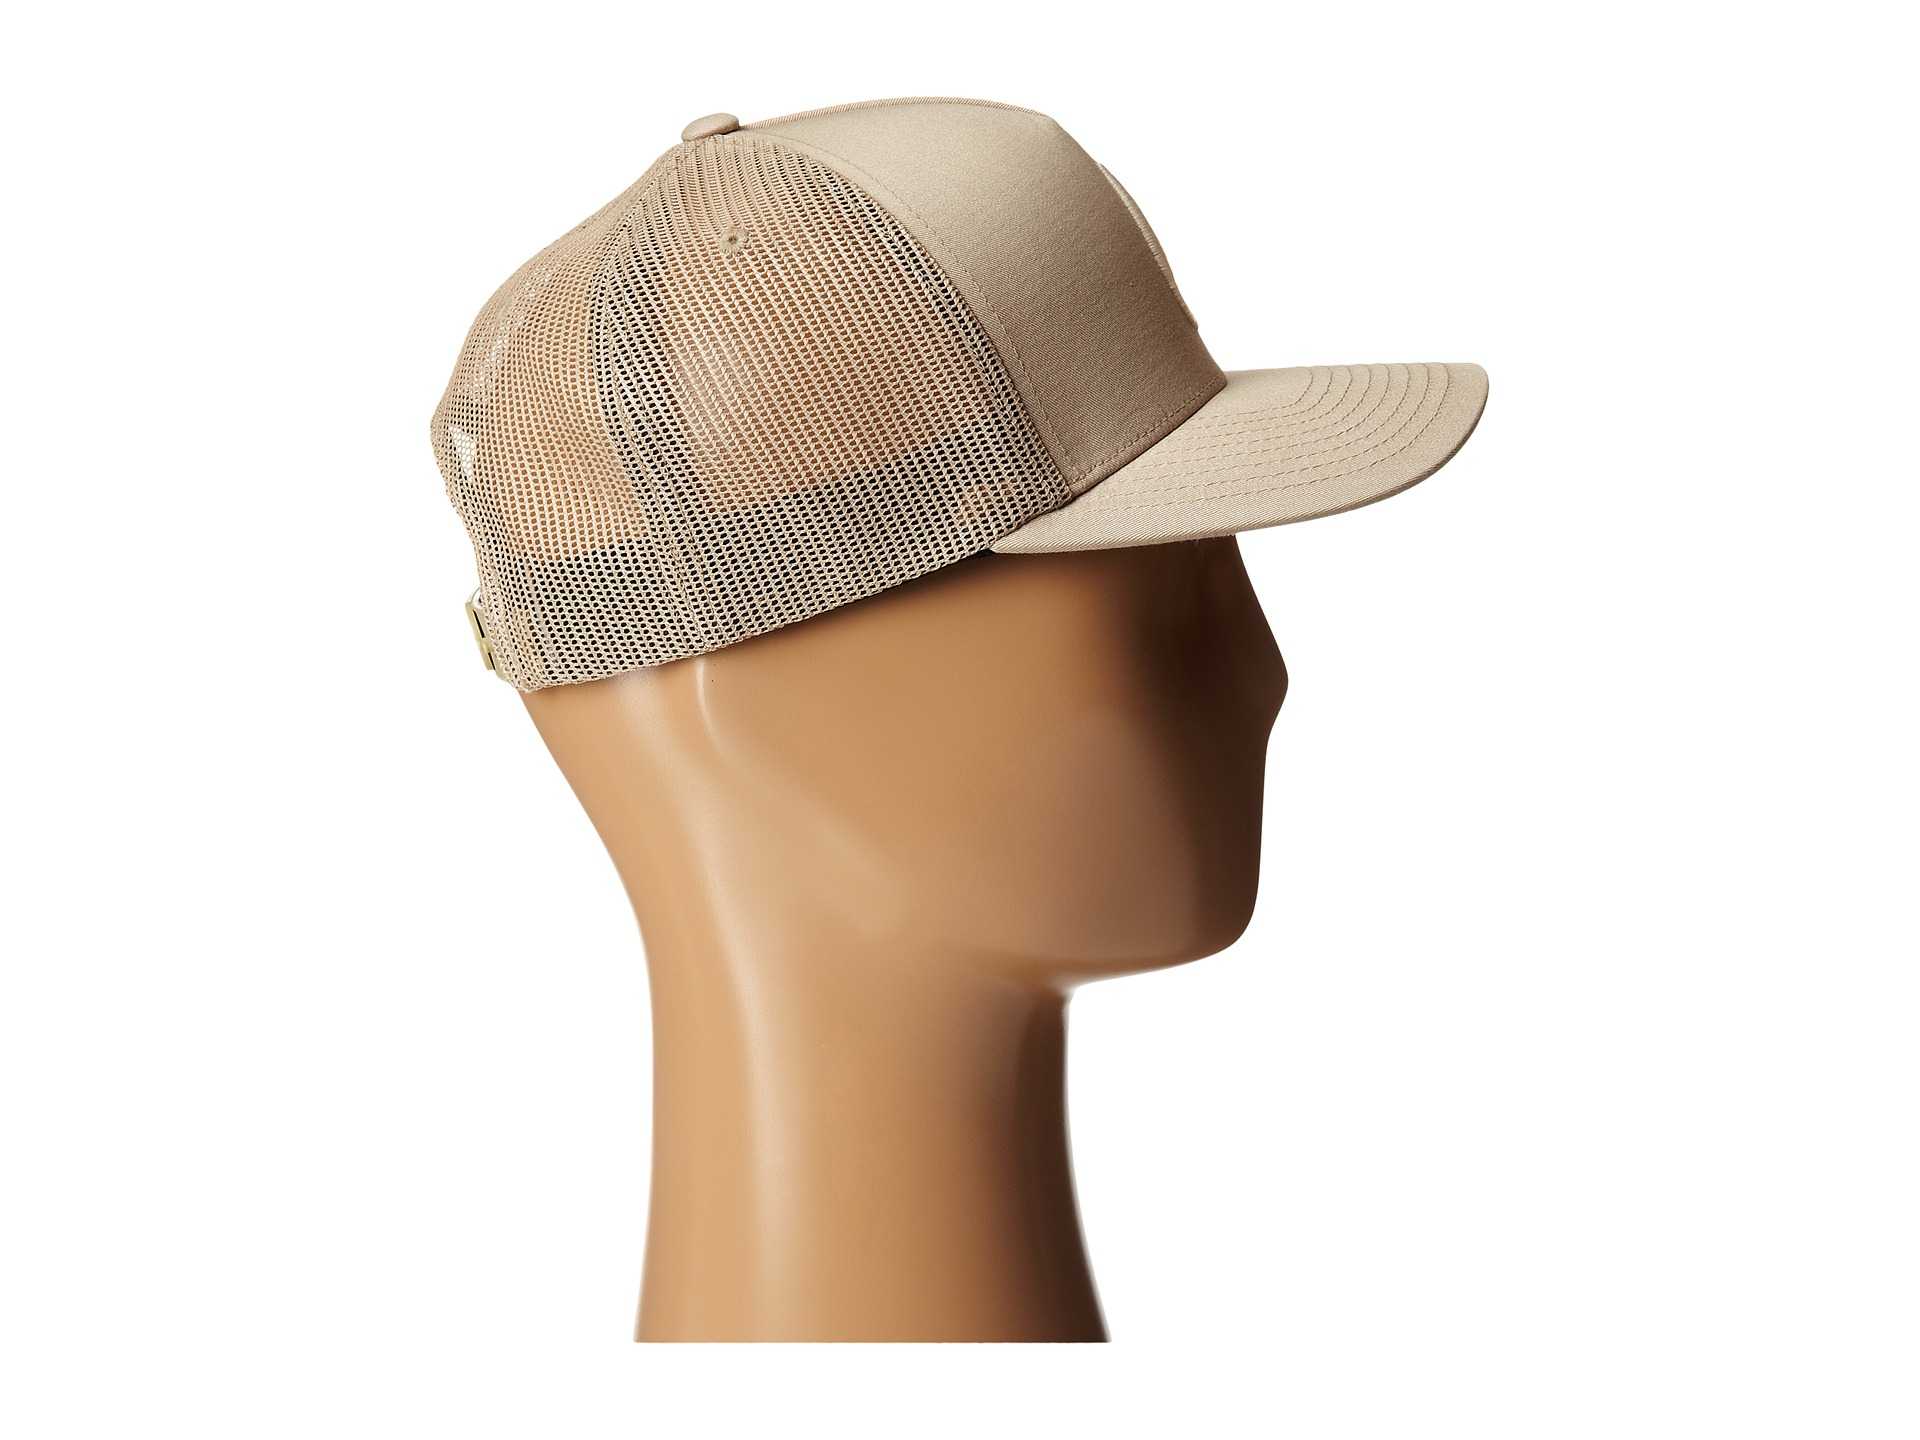 Lyst - Nixon Iconed Trucker Hat in Natural 1ad173bb184